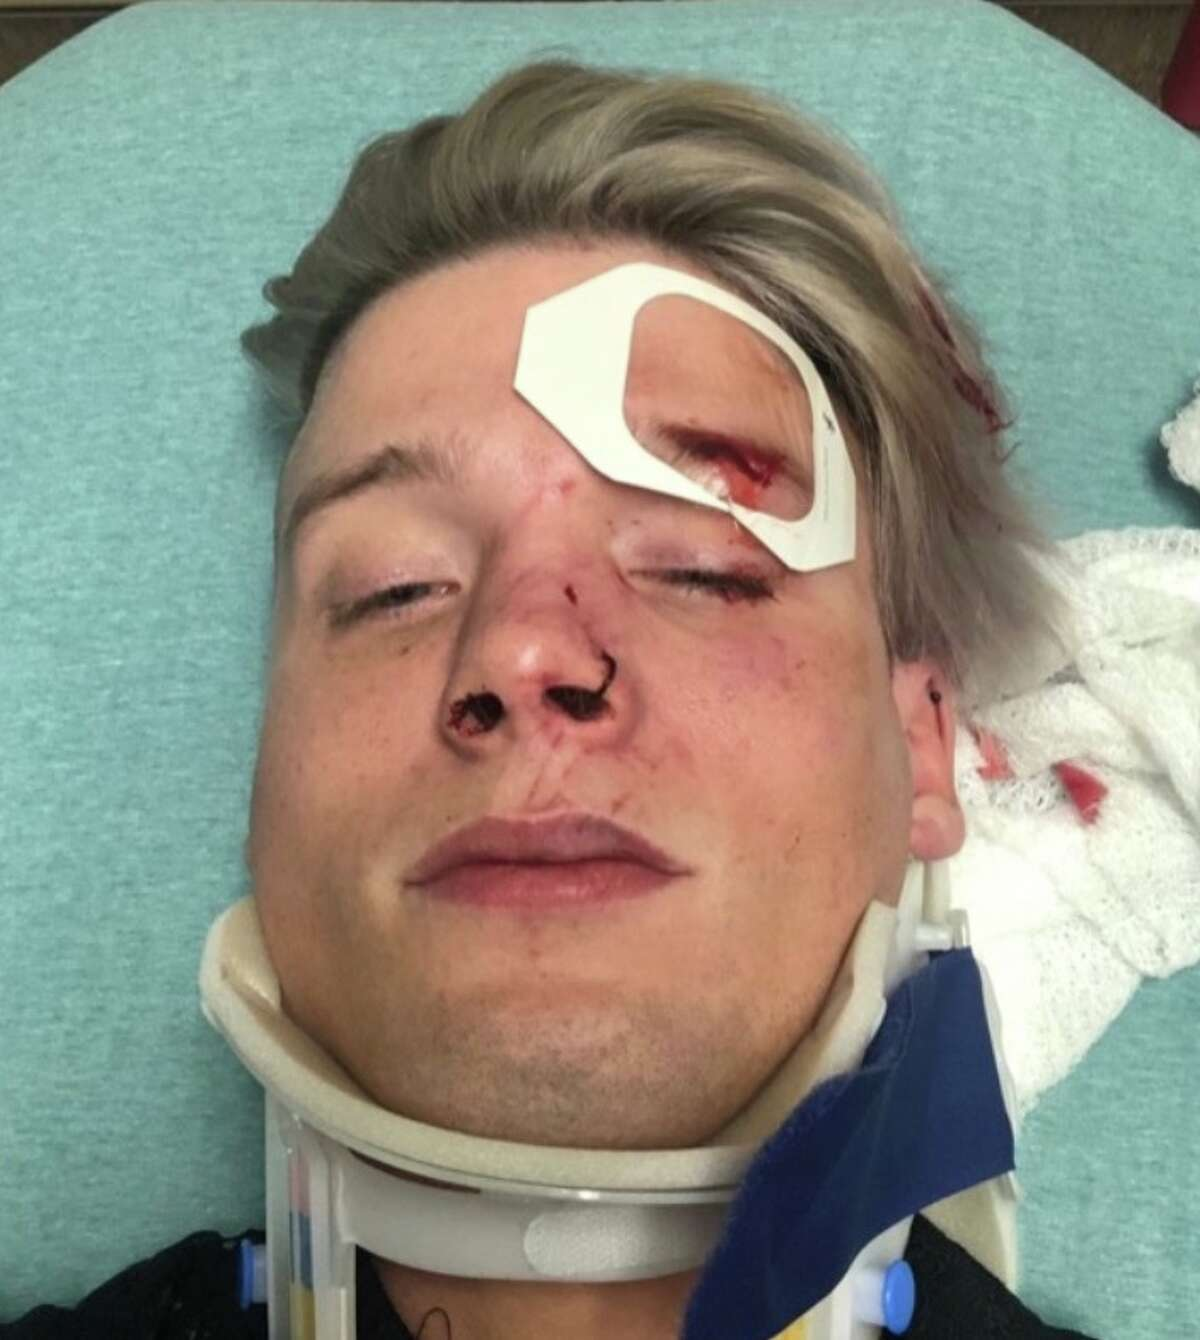 Tristan Perry grew up in The Woodlands. He and Spencer Deehring were attacked in downtown Austin in an alleged hate crime.